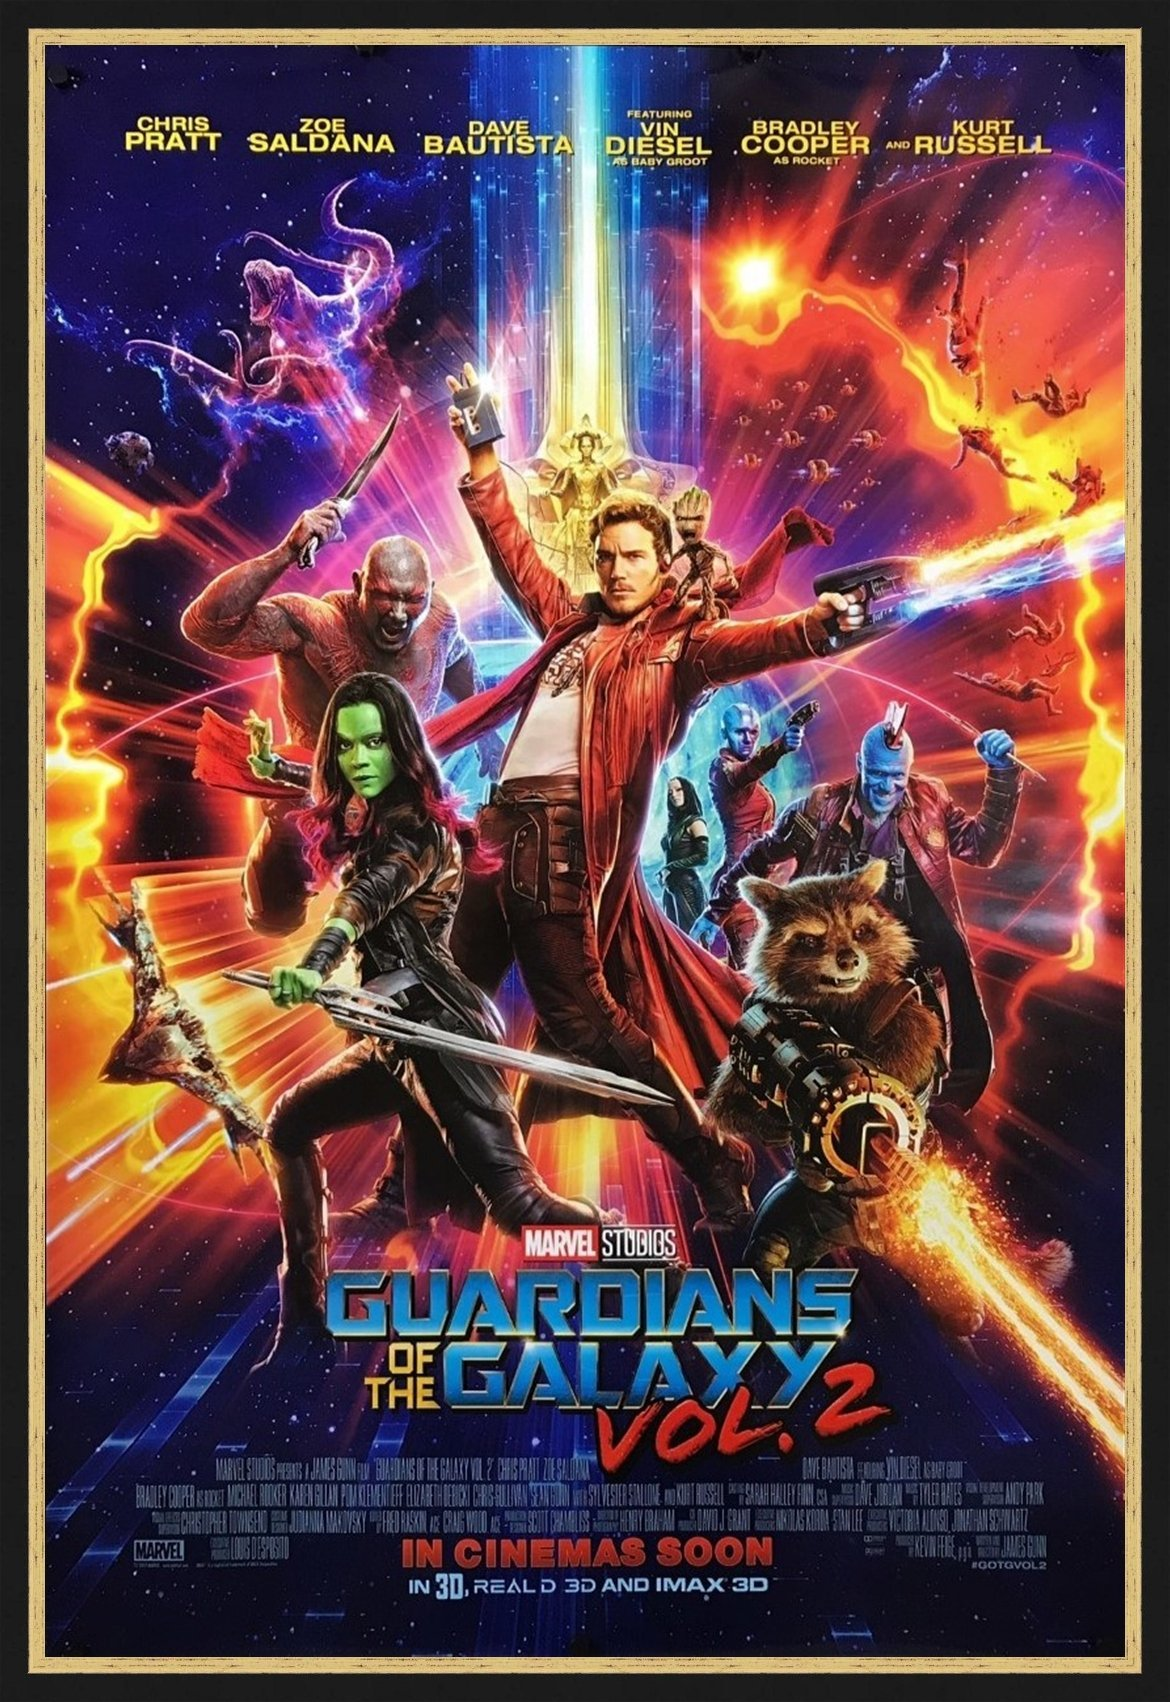 An original movie poster for the film Guardians of the Galaxy 2